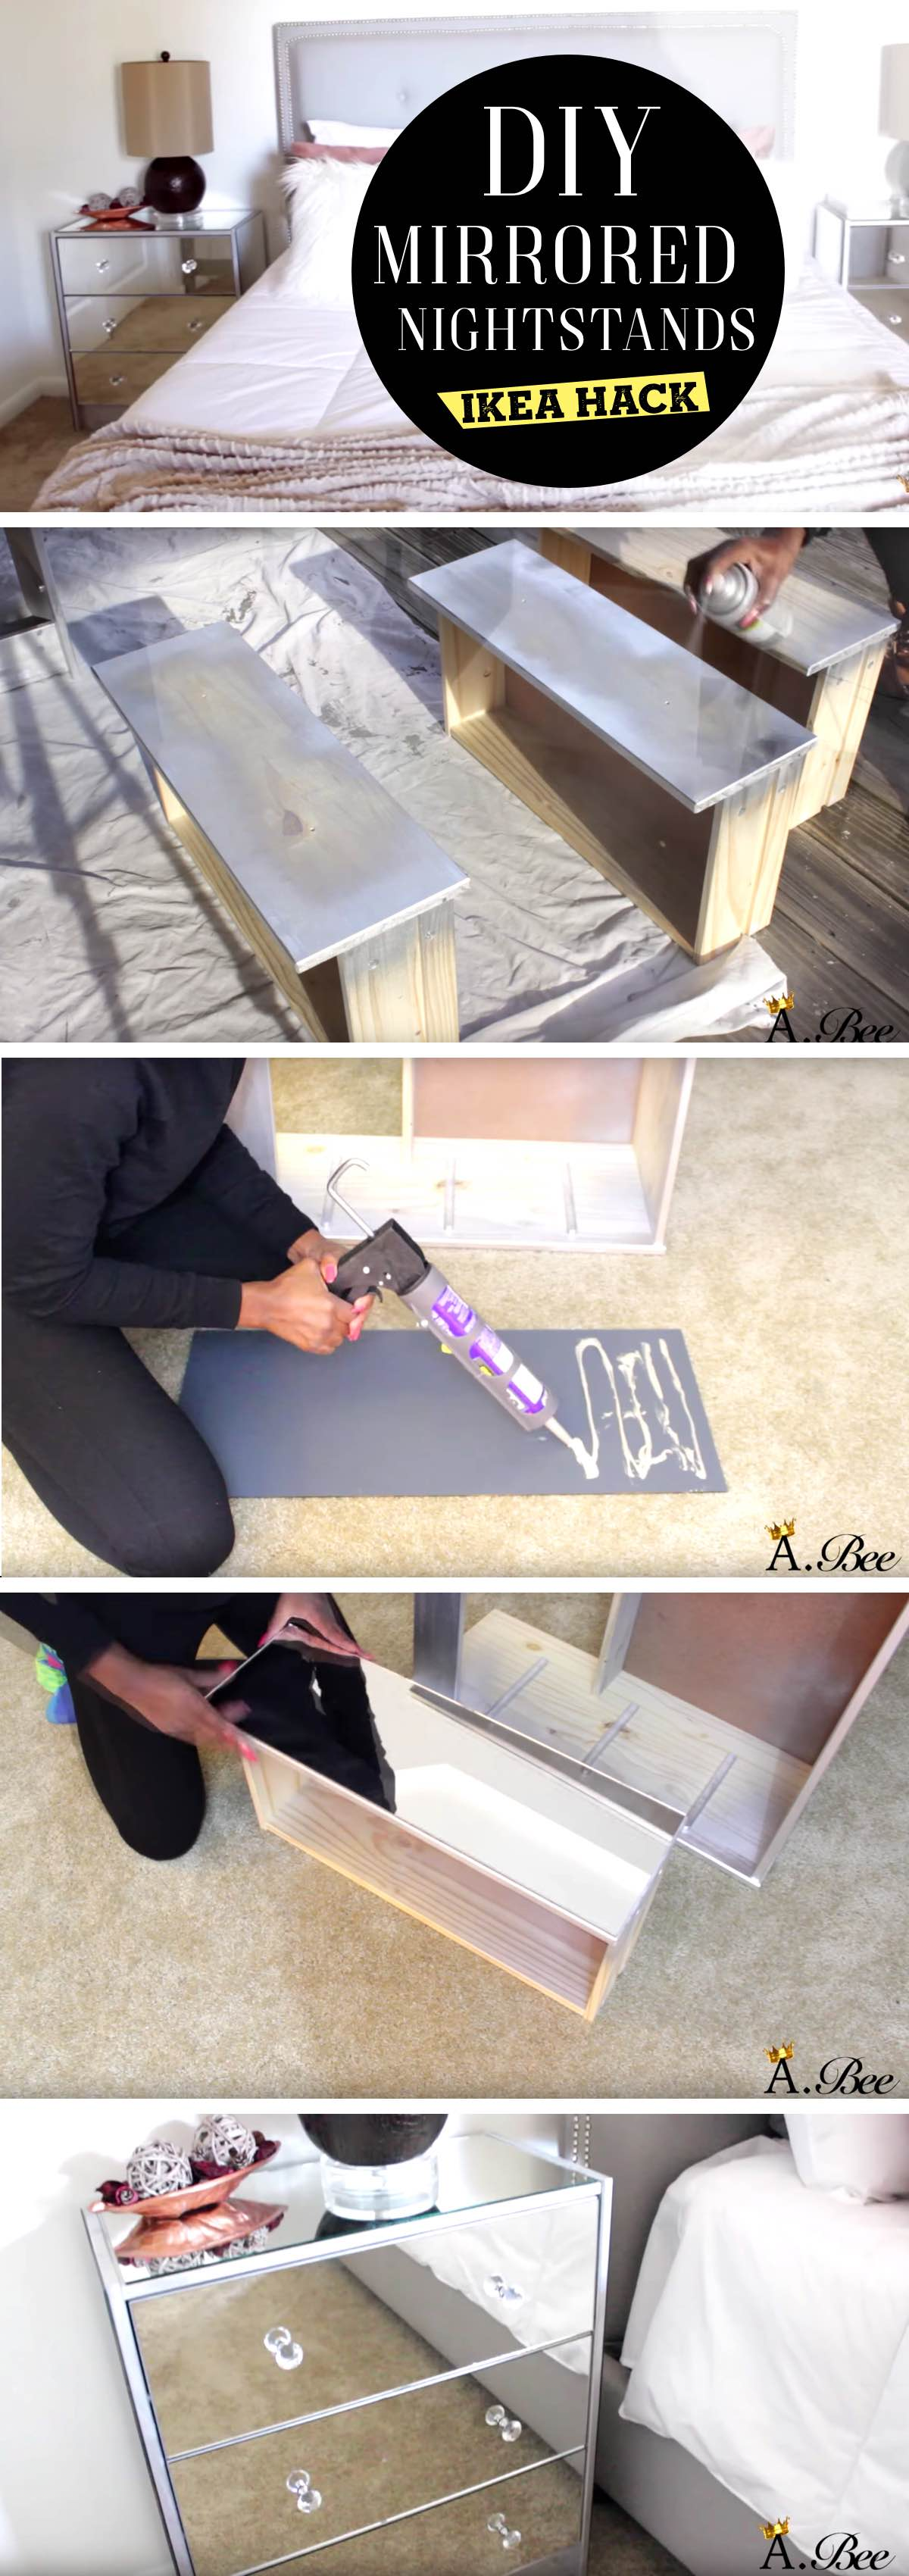 DIY Mirrored Nightstand ikea hack